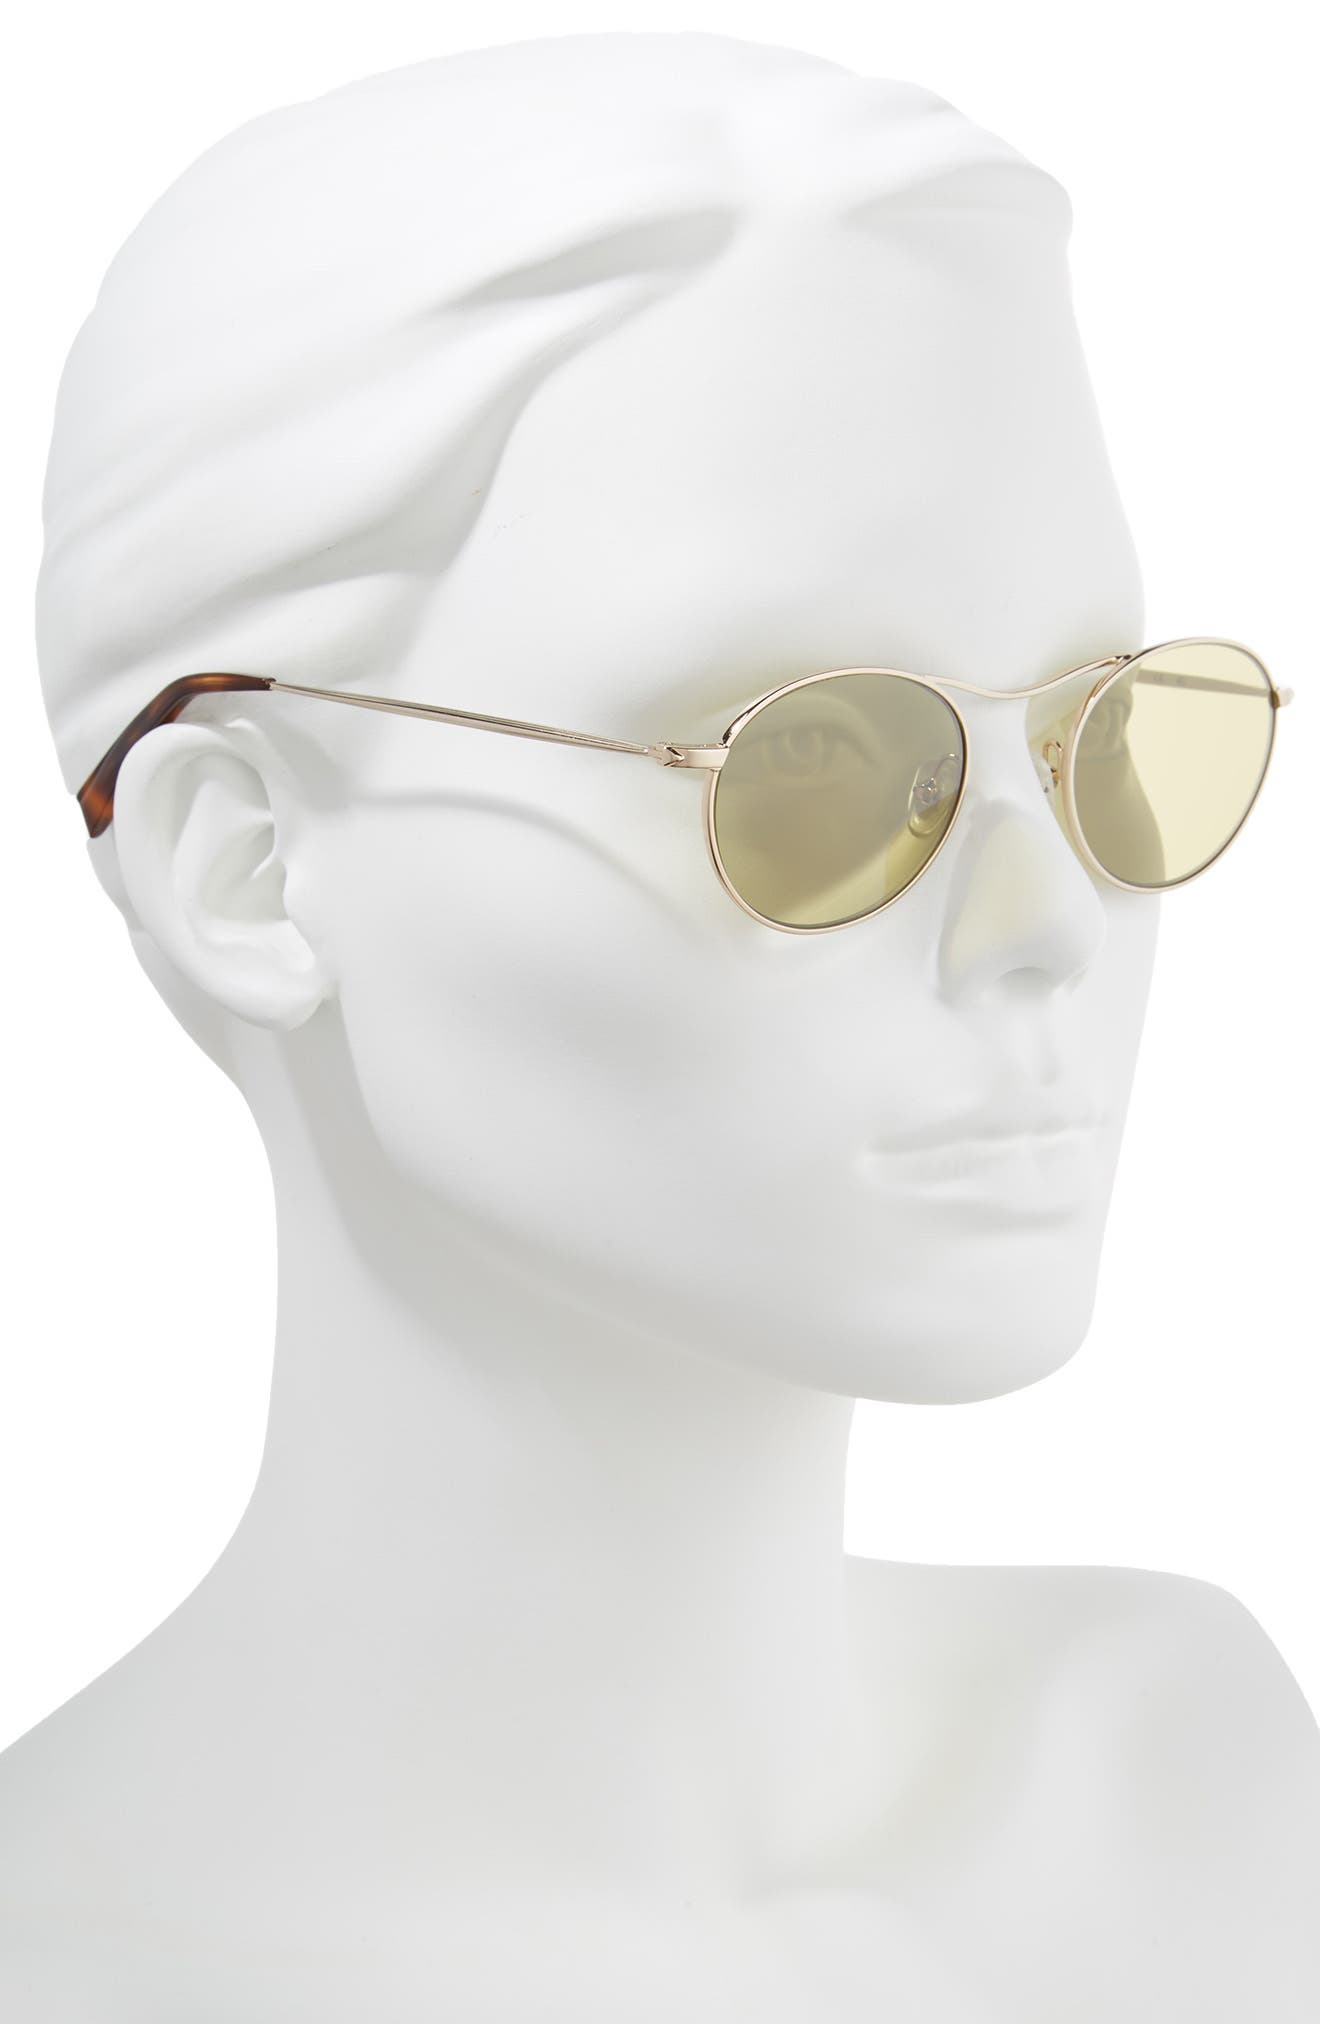 Tasha 49mm Oval Sunglasses,                             Alternate thumbnail 2, color,                             Light Gold Metal/ Camo Silver